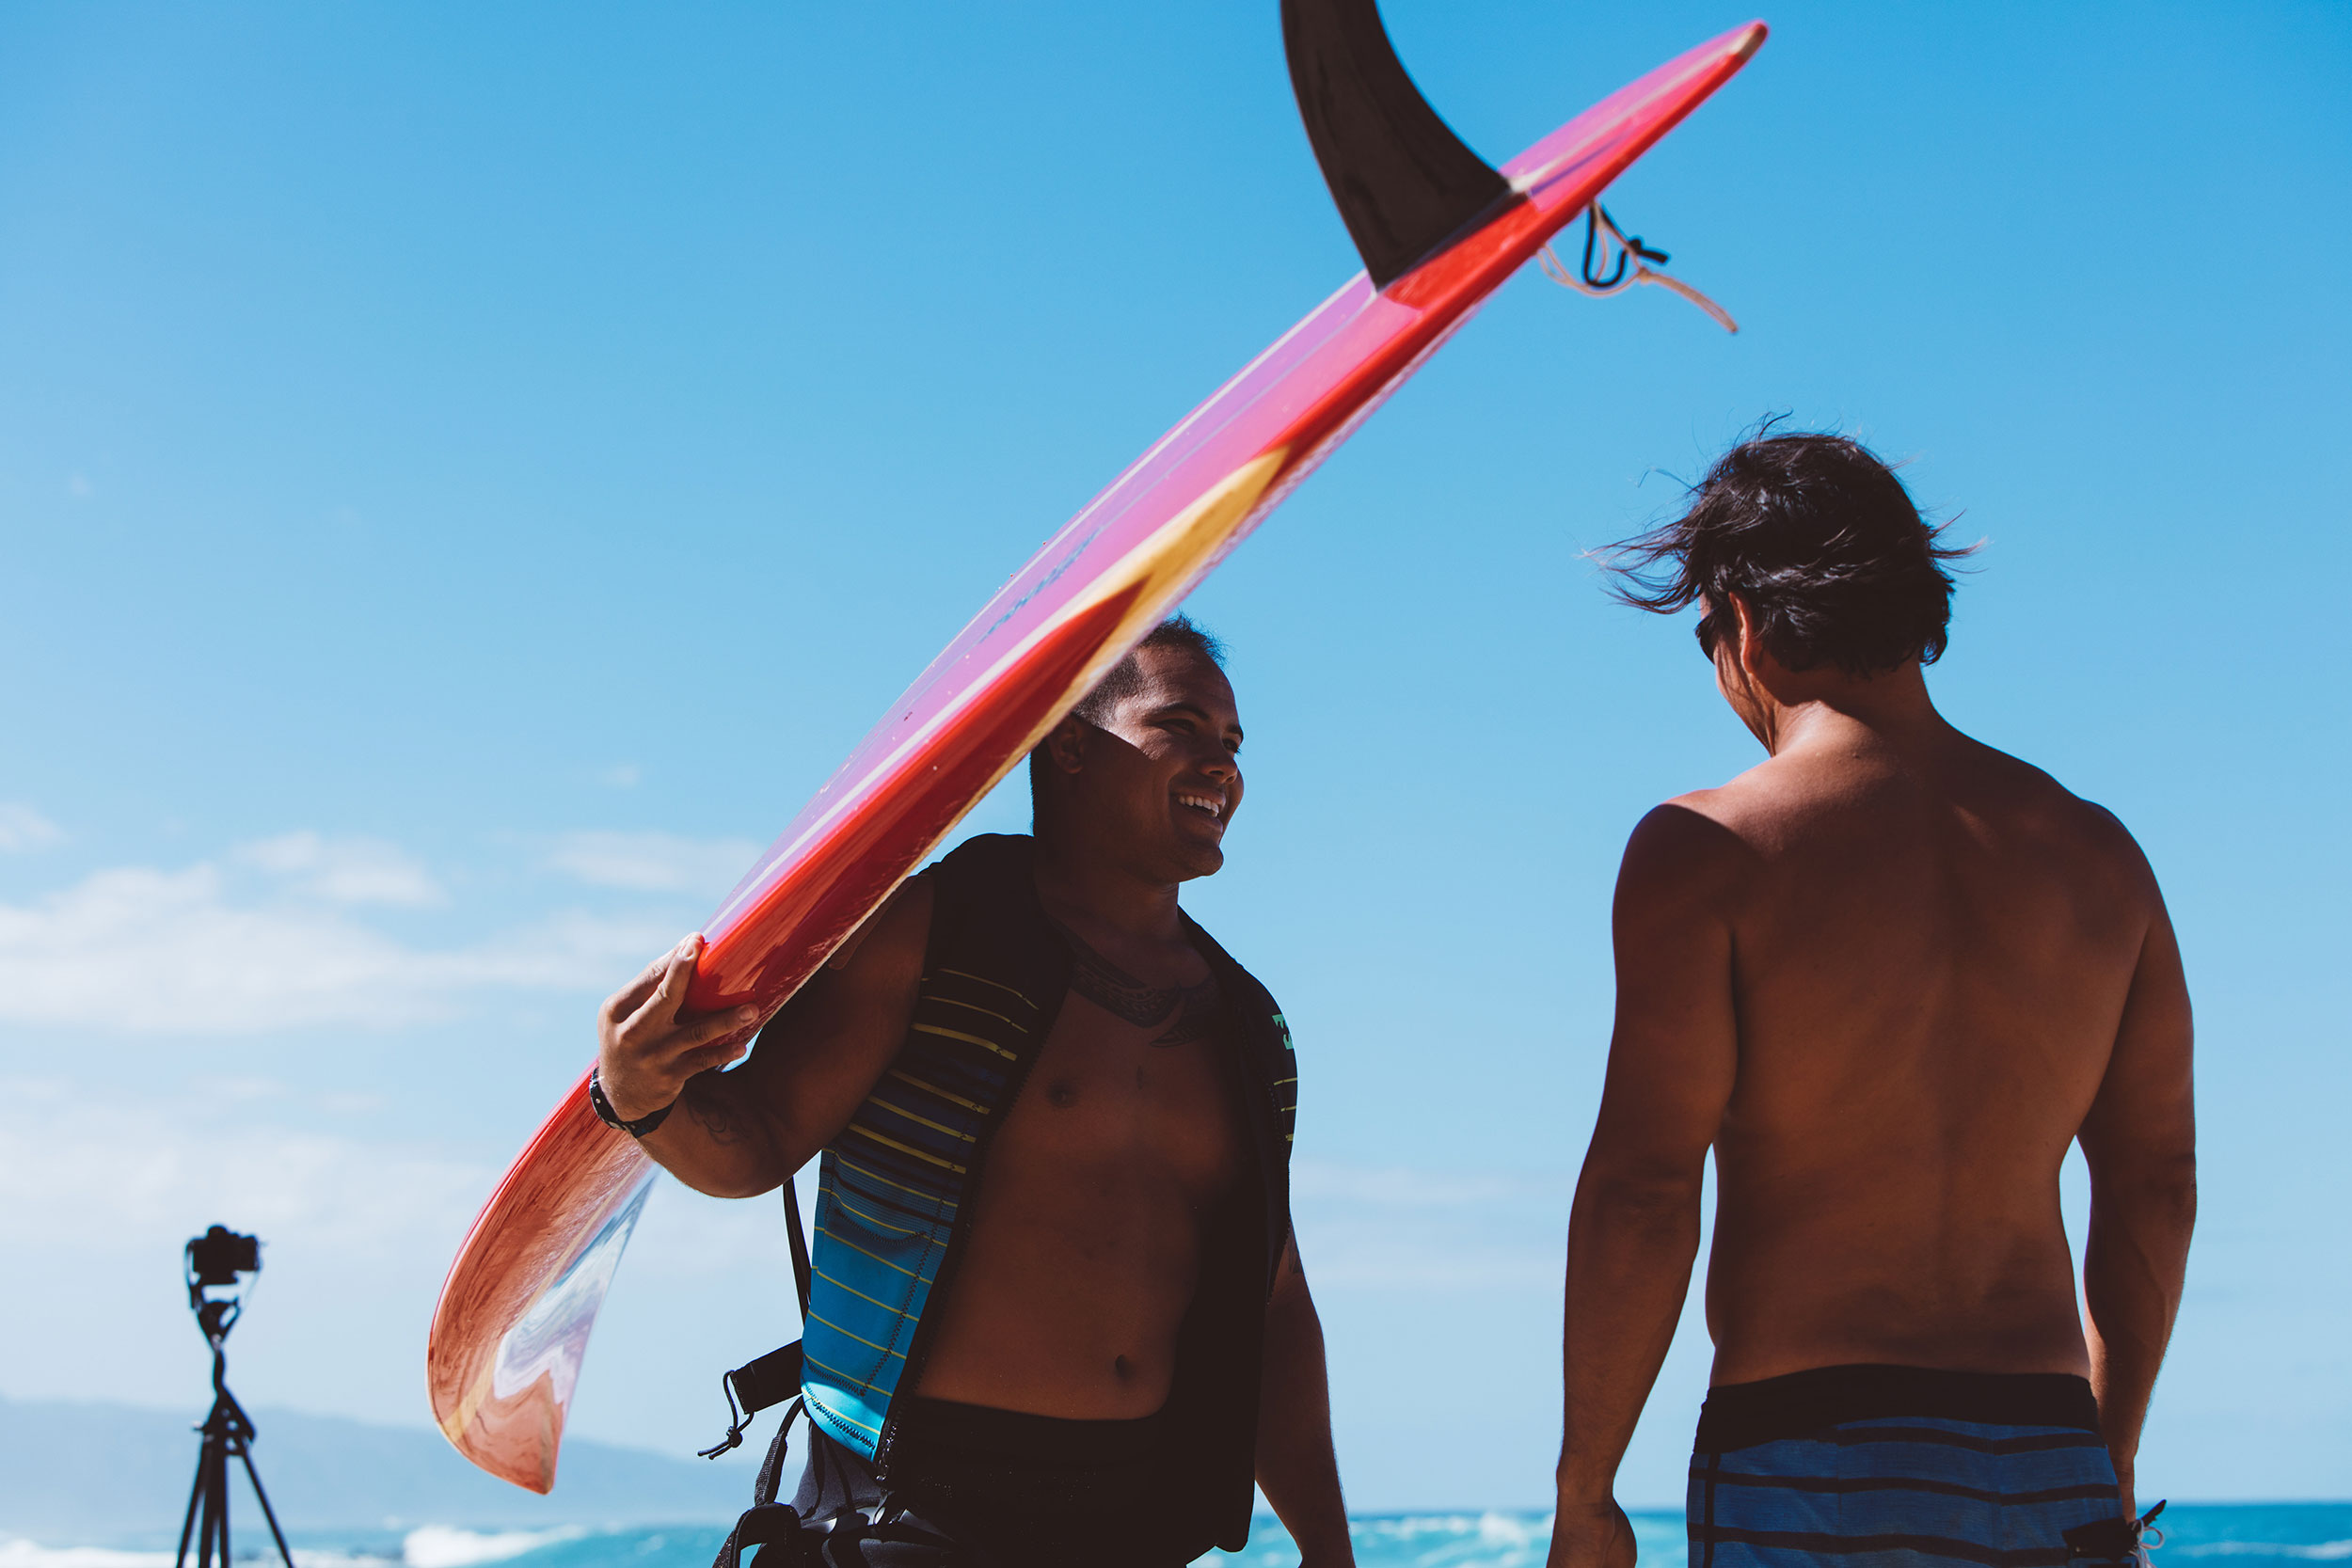 Local surfers